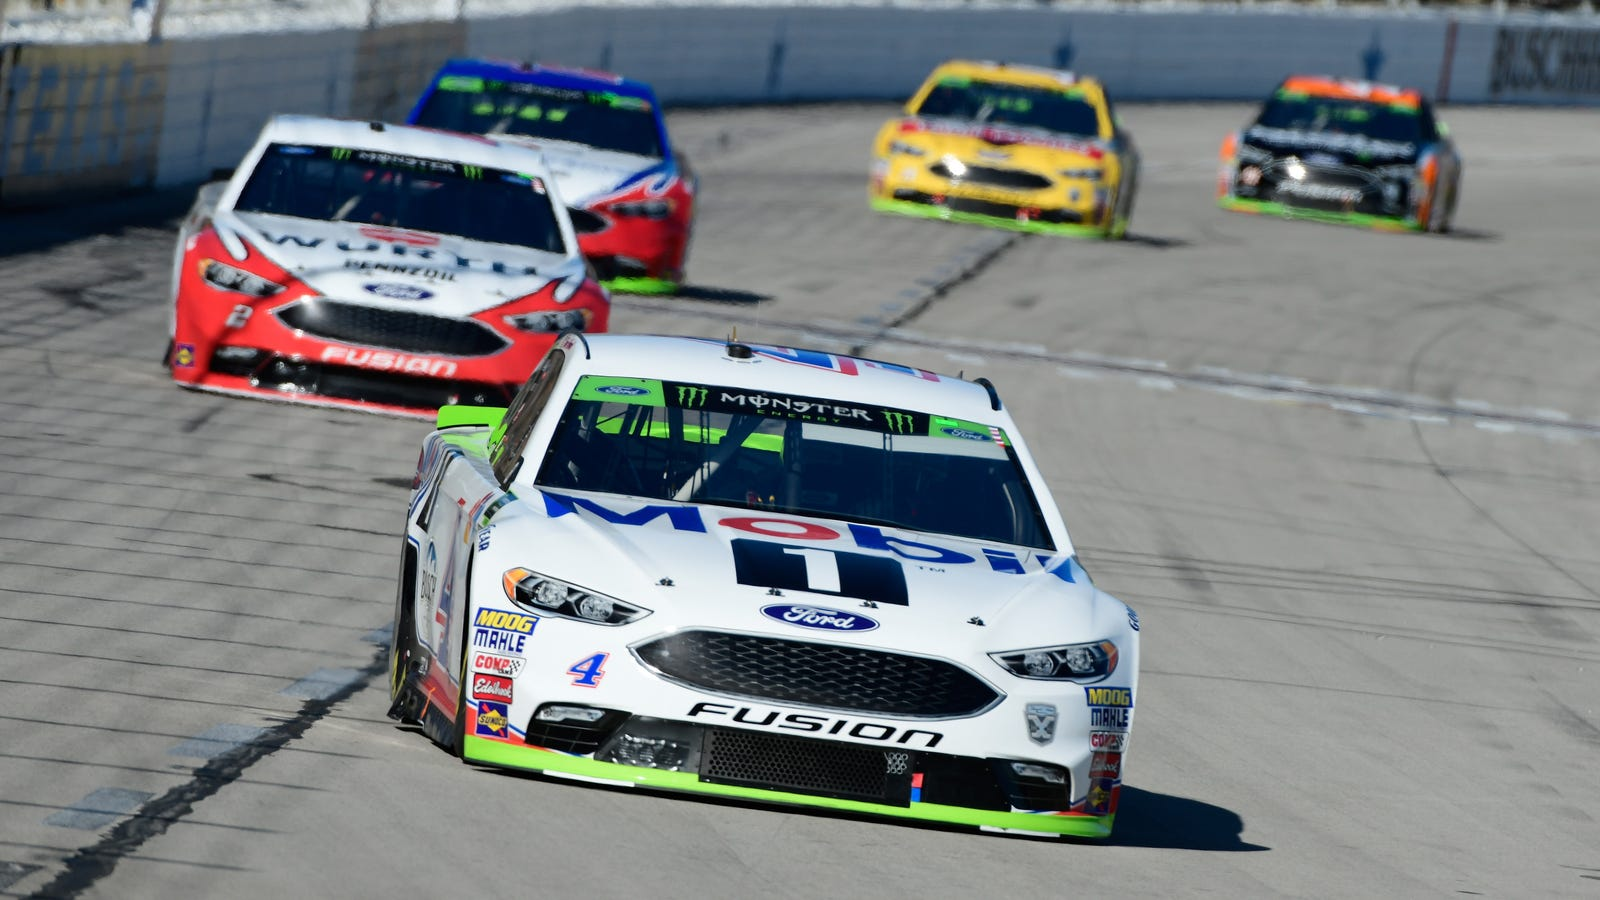 Huge Penalty Puts Kevin Harvick at Risk of Playoff Elimination Thanks to Strange NASCAR Math